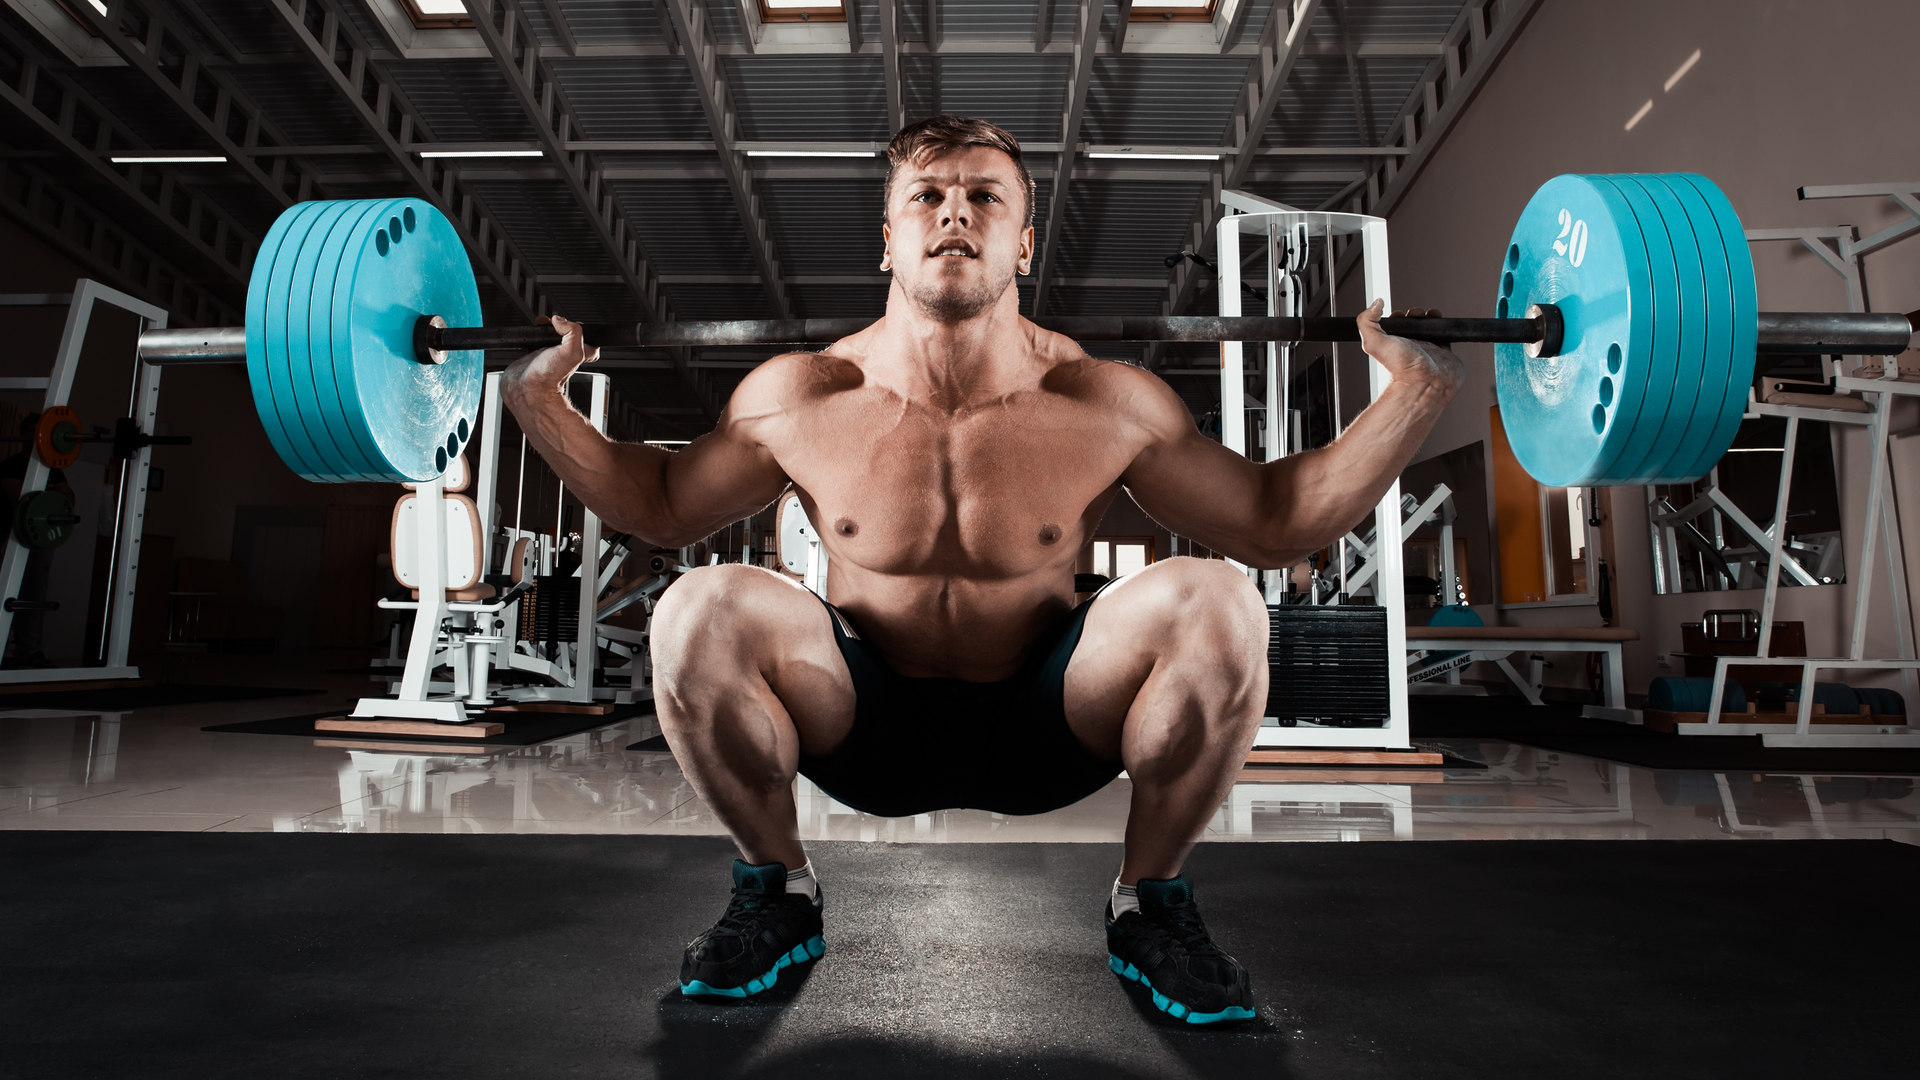 Athlete bracing his core during a squat